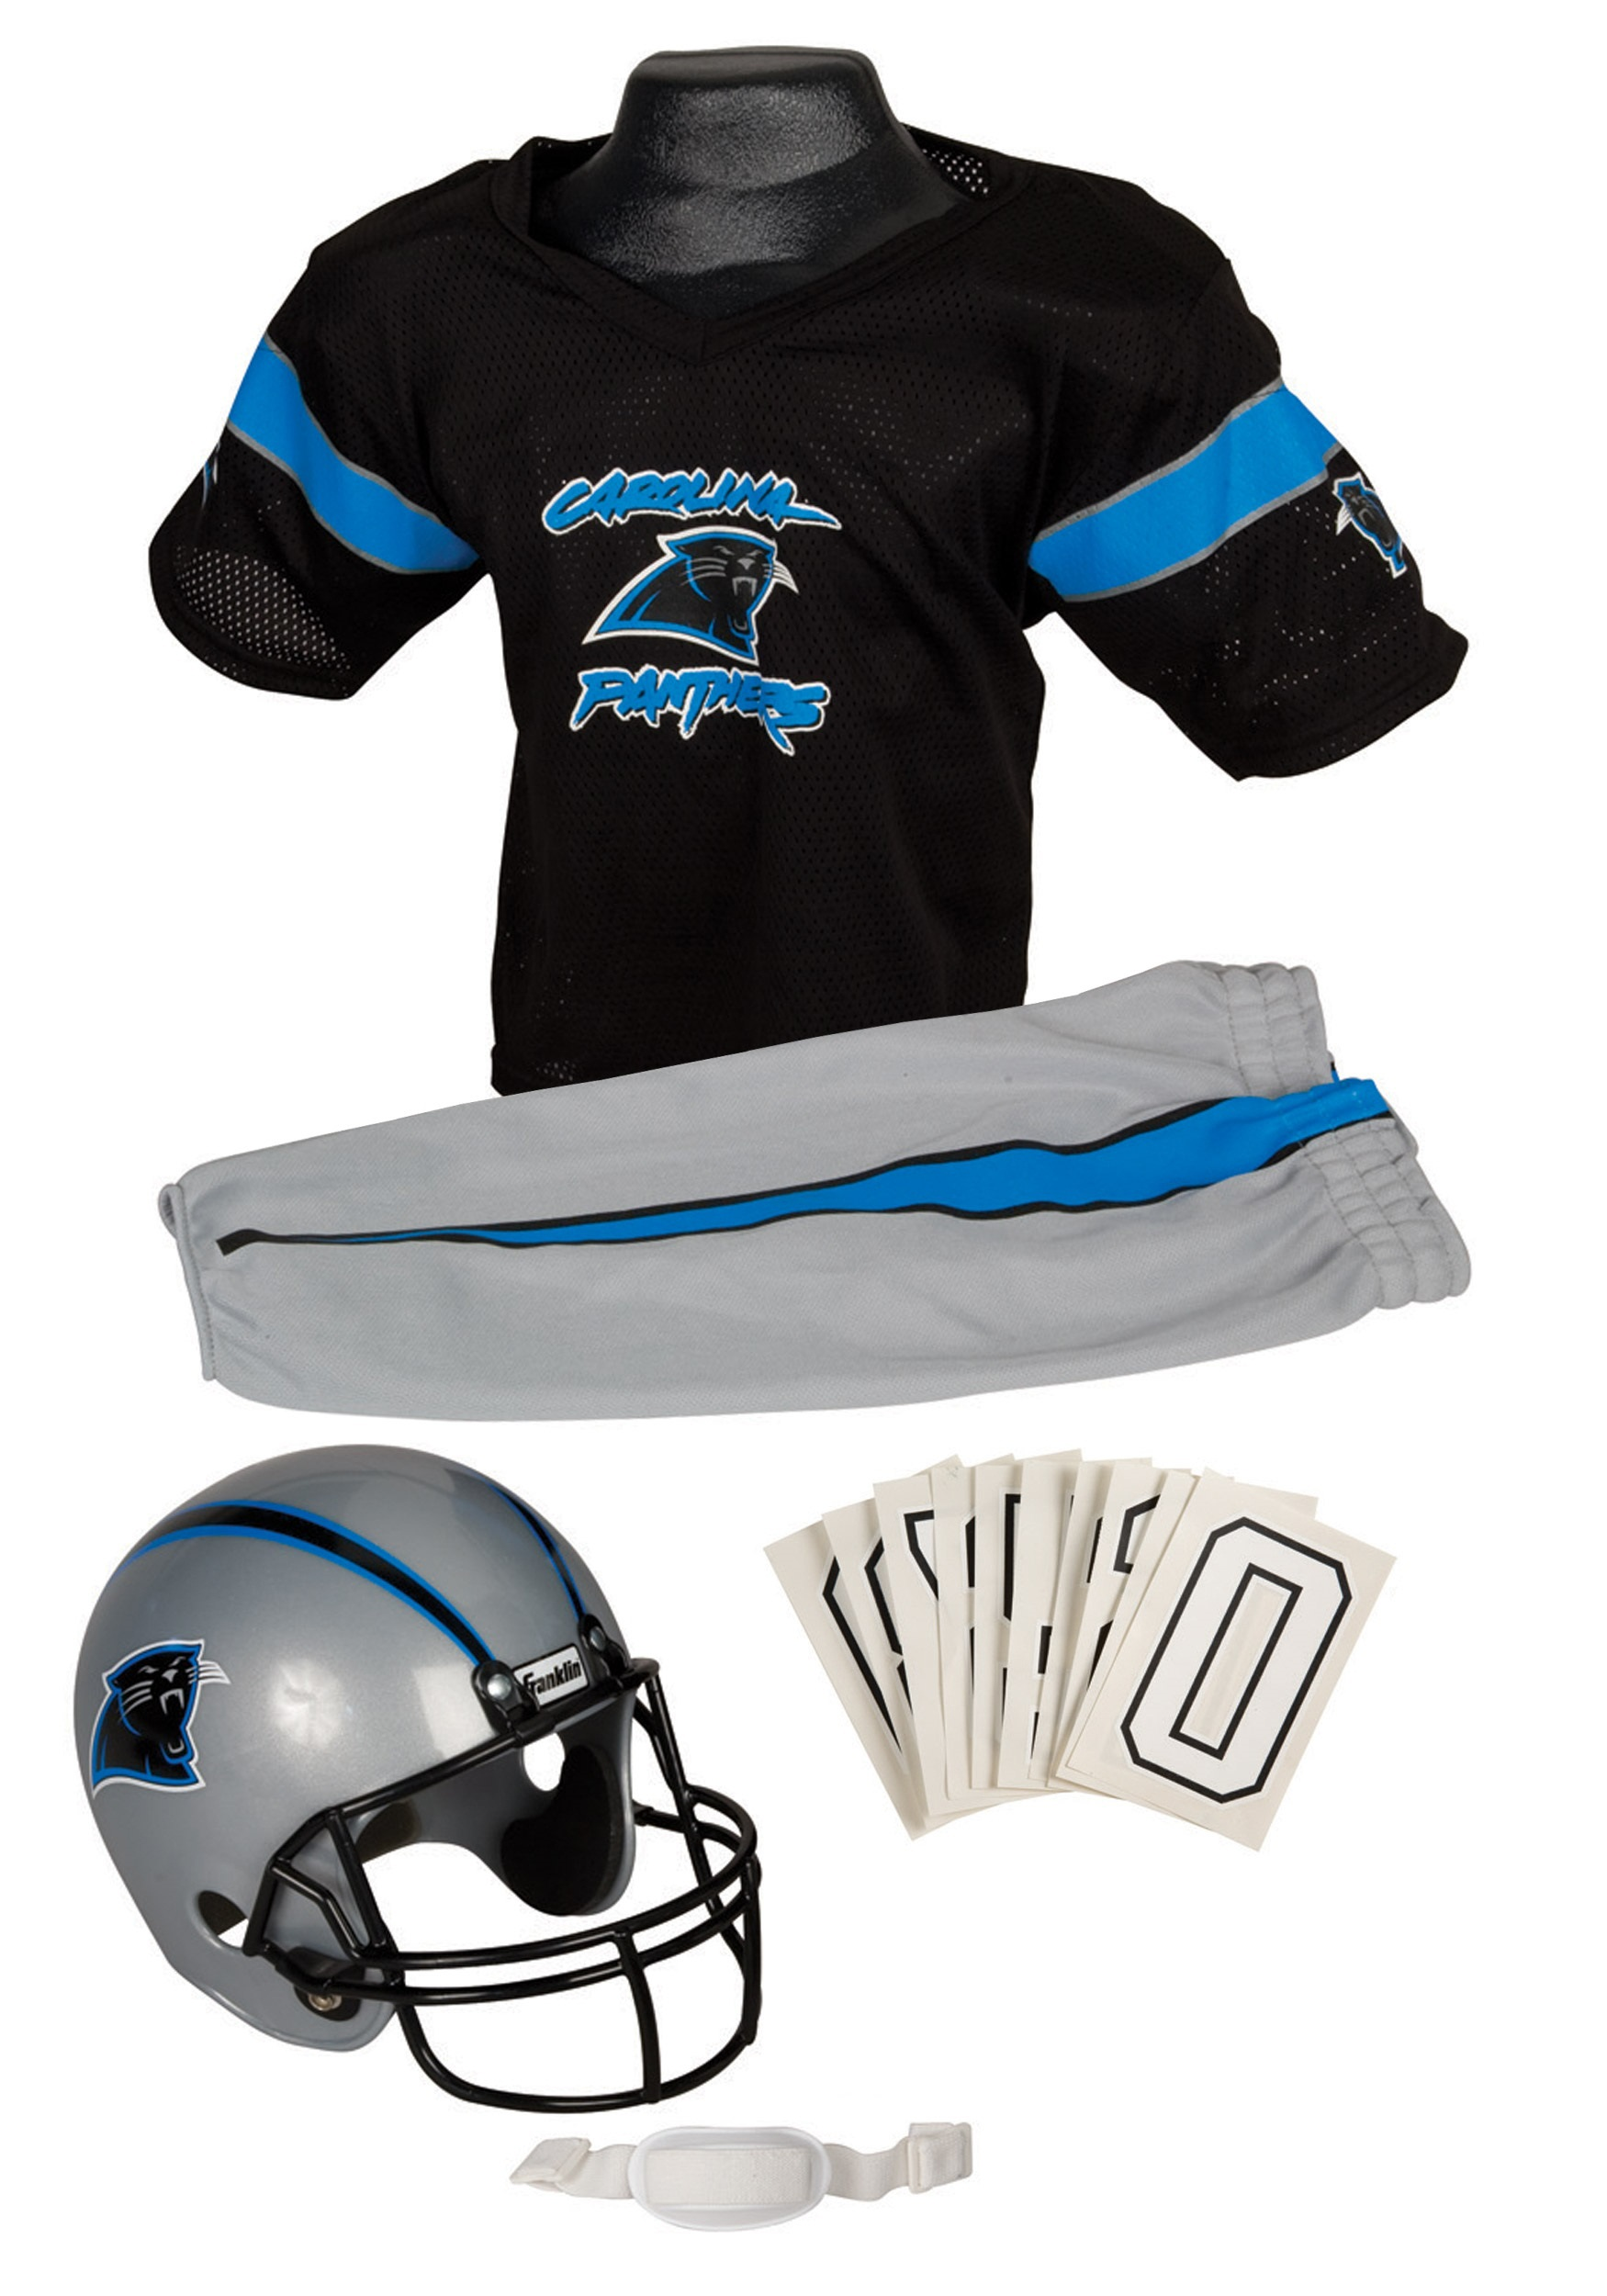 Football Player Costumes   Uniforms for Kids and Adults 4ce86c83f